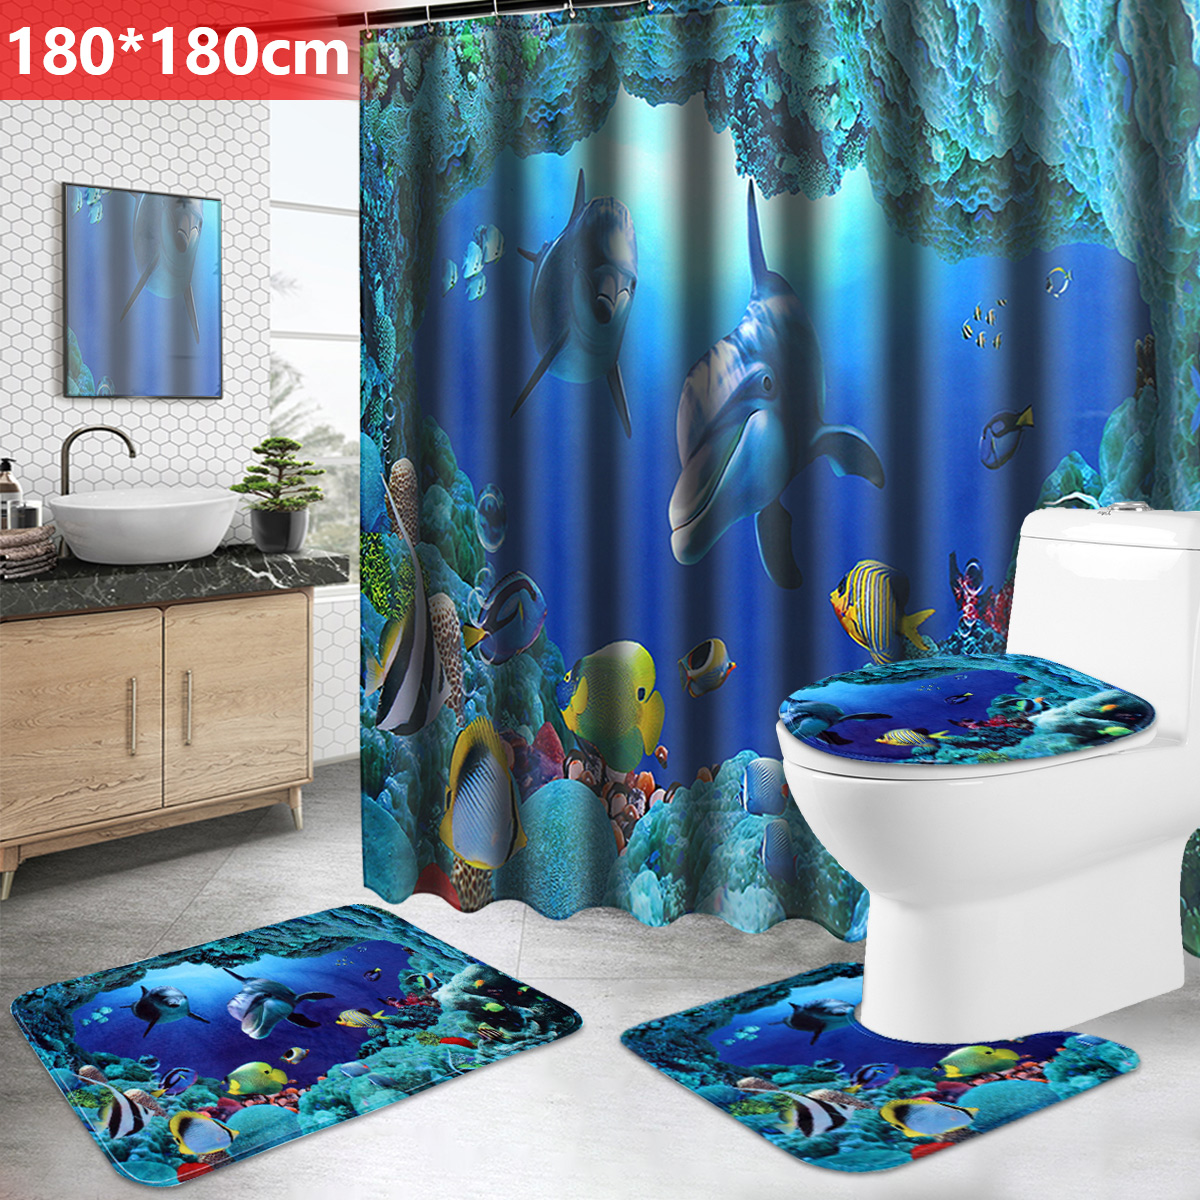 Bath Mat Clearance Shower Curtain 180 x180cm Pedestal Rug Bath Mat Seat Cover